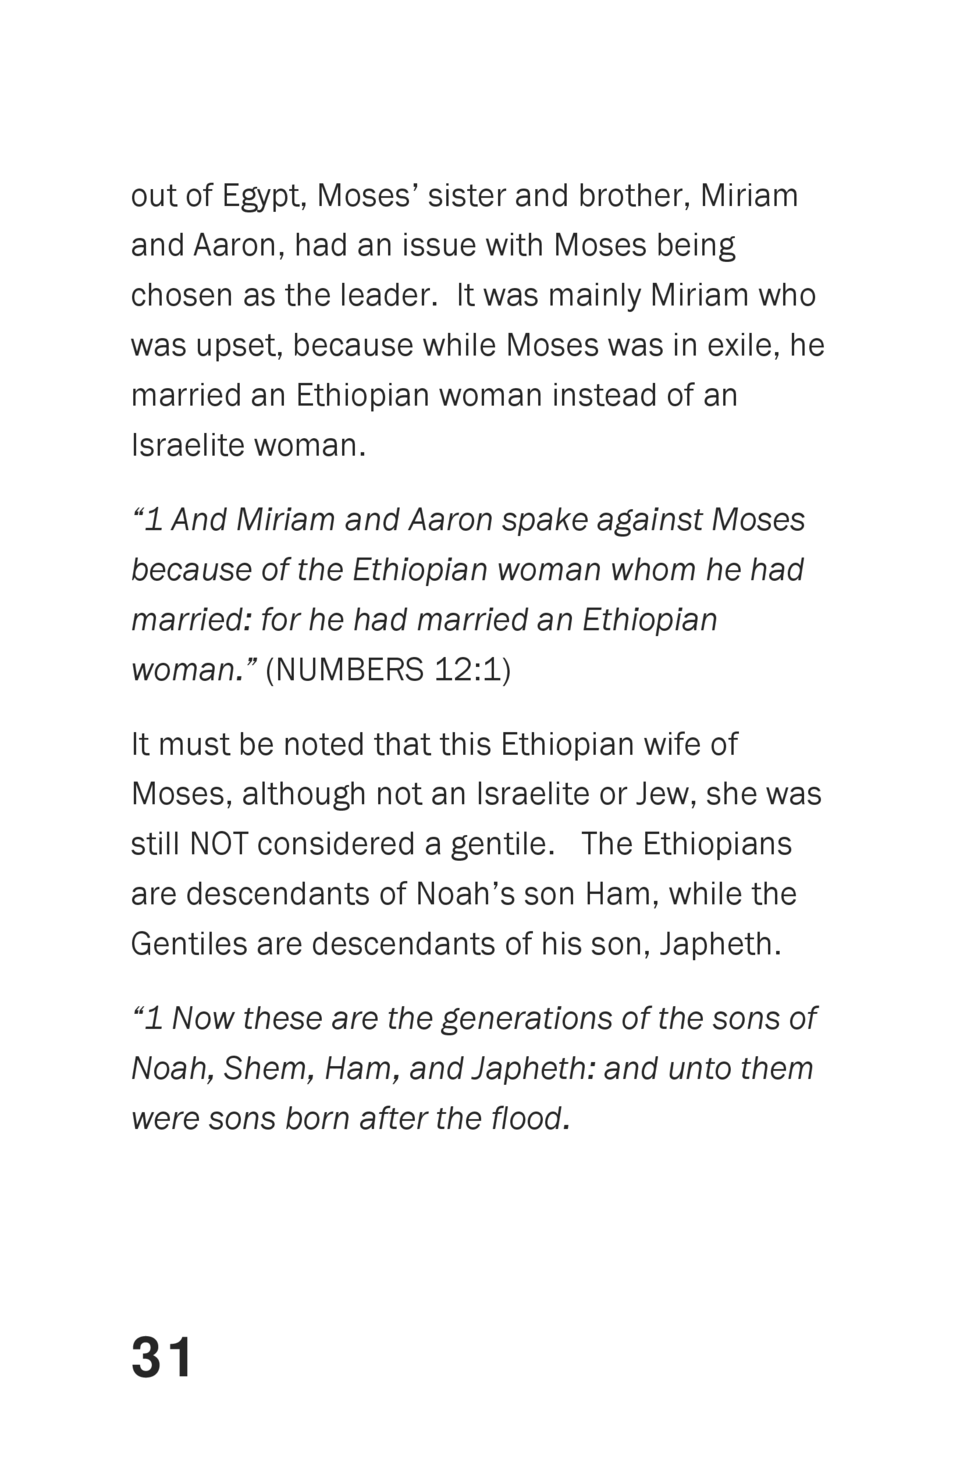 out of Egypt, Moses    sister and brother, Miriam and Aaron, had an issue with Moses being chosen as the leader. It was ma...